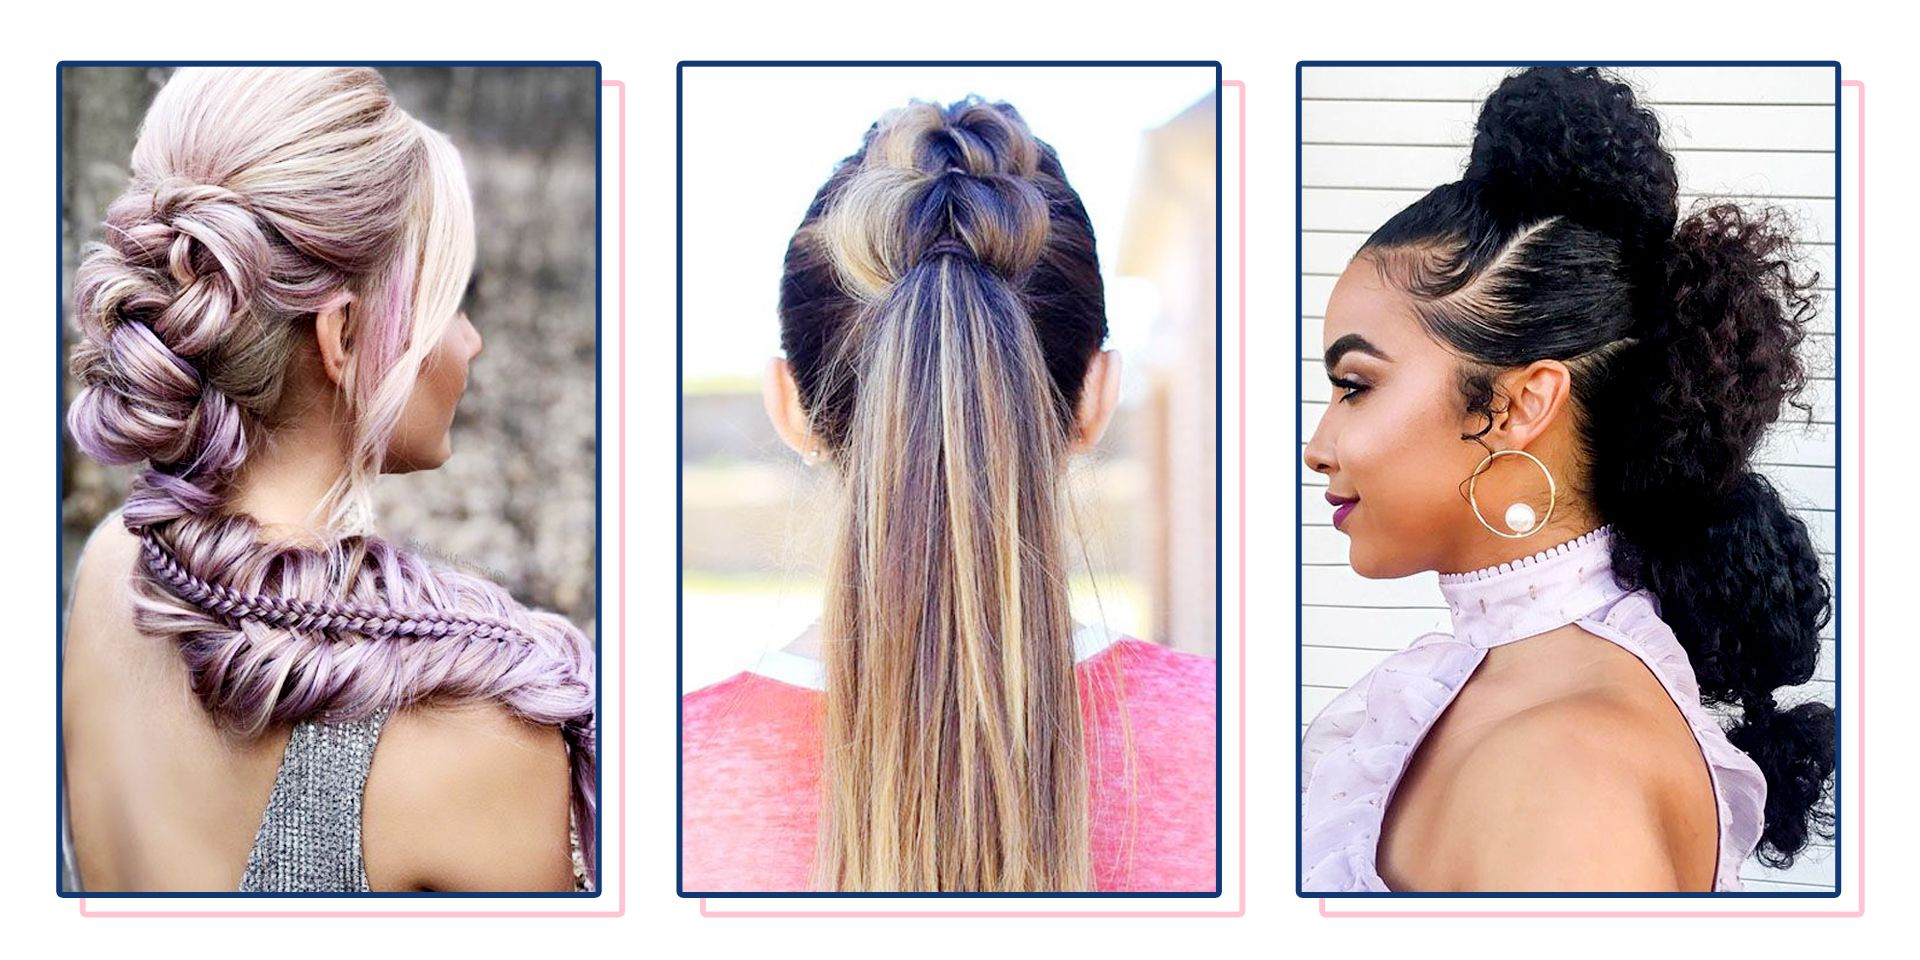 40 Best Prom Updos For 2019 – Easy Prom Updo Hairstyles Pertaining To Most Recent Floral Braid Crowns Hairstyles For Prom (Gallery 18 of 20)